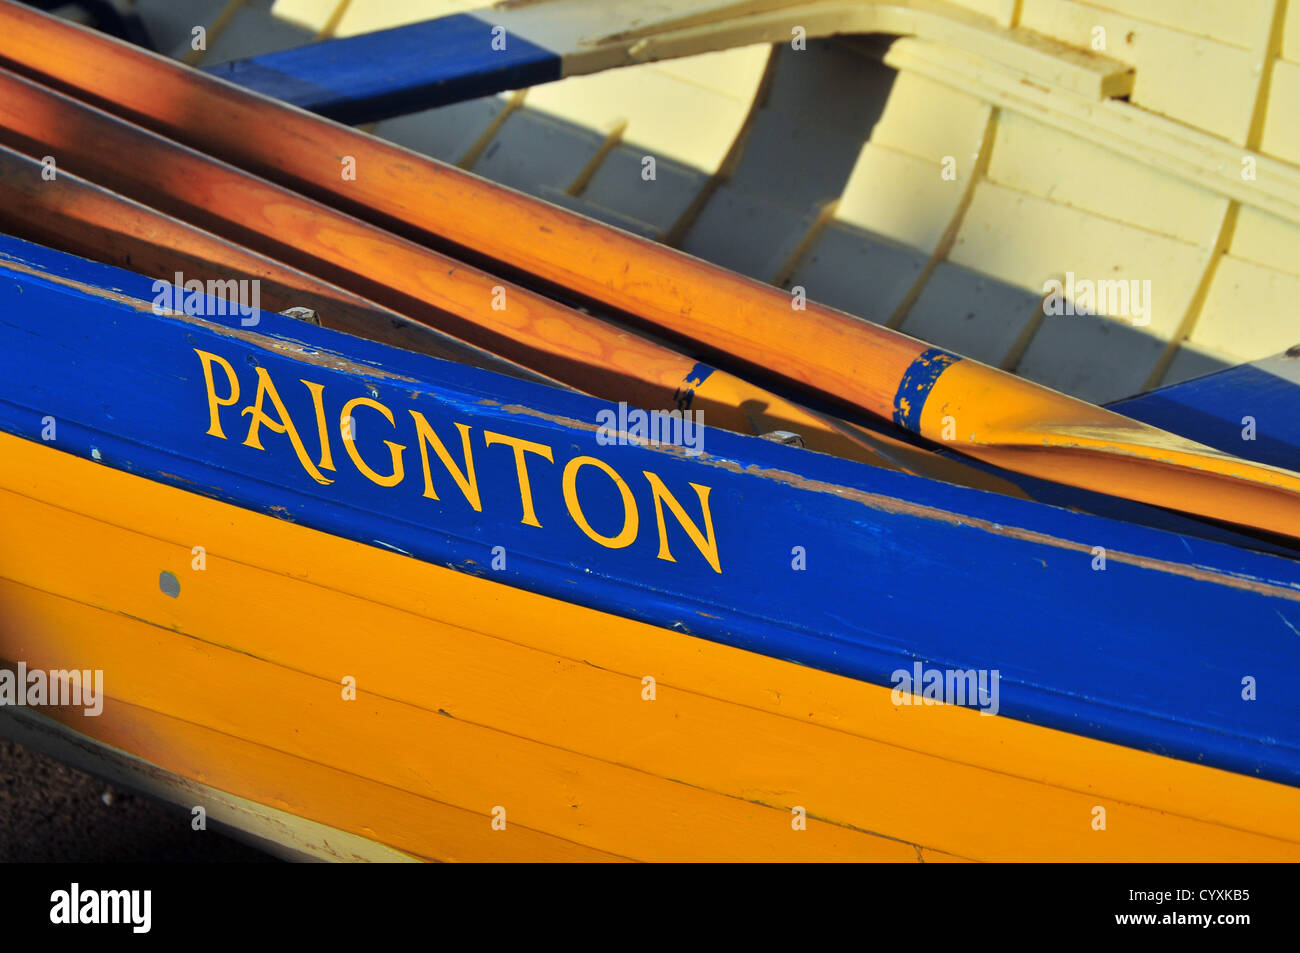 Rowing Boat - Stock Image